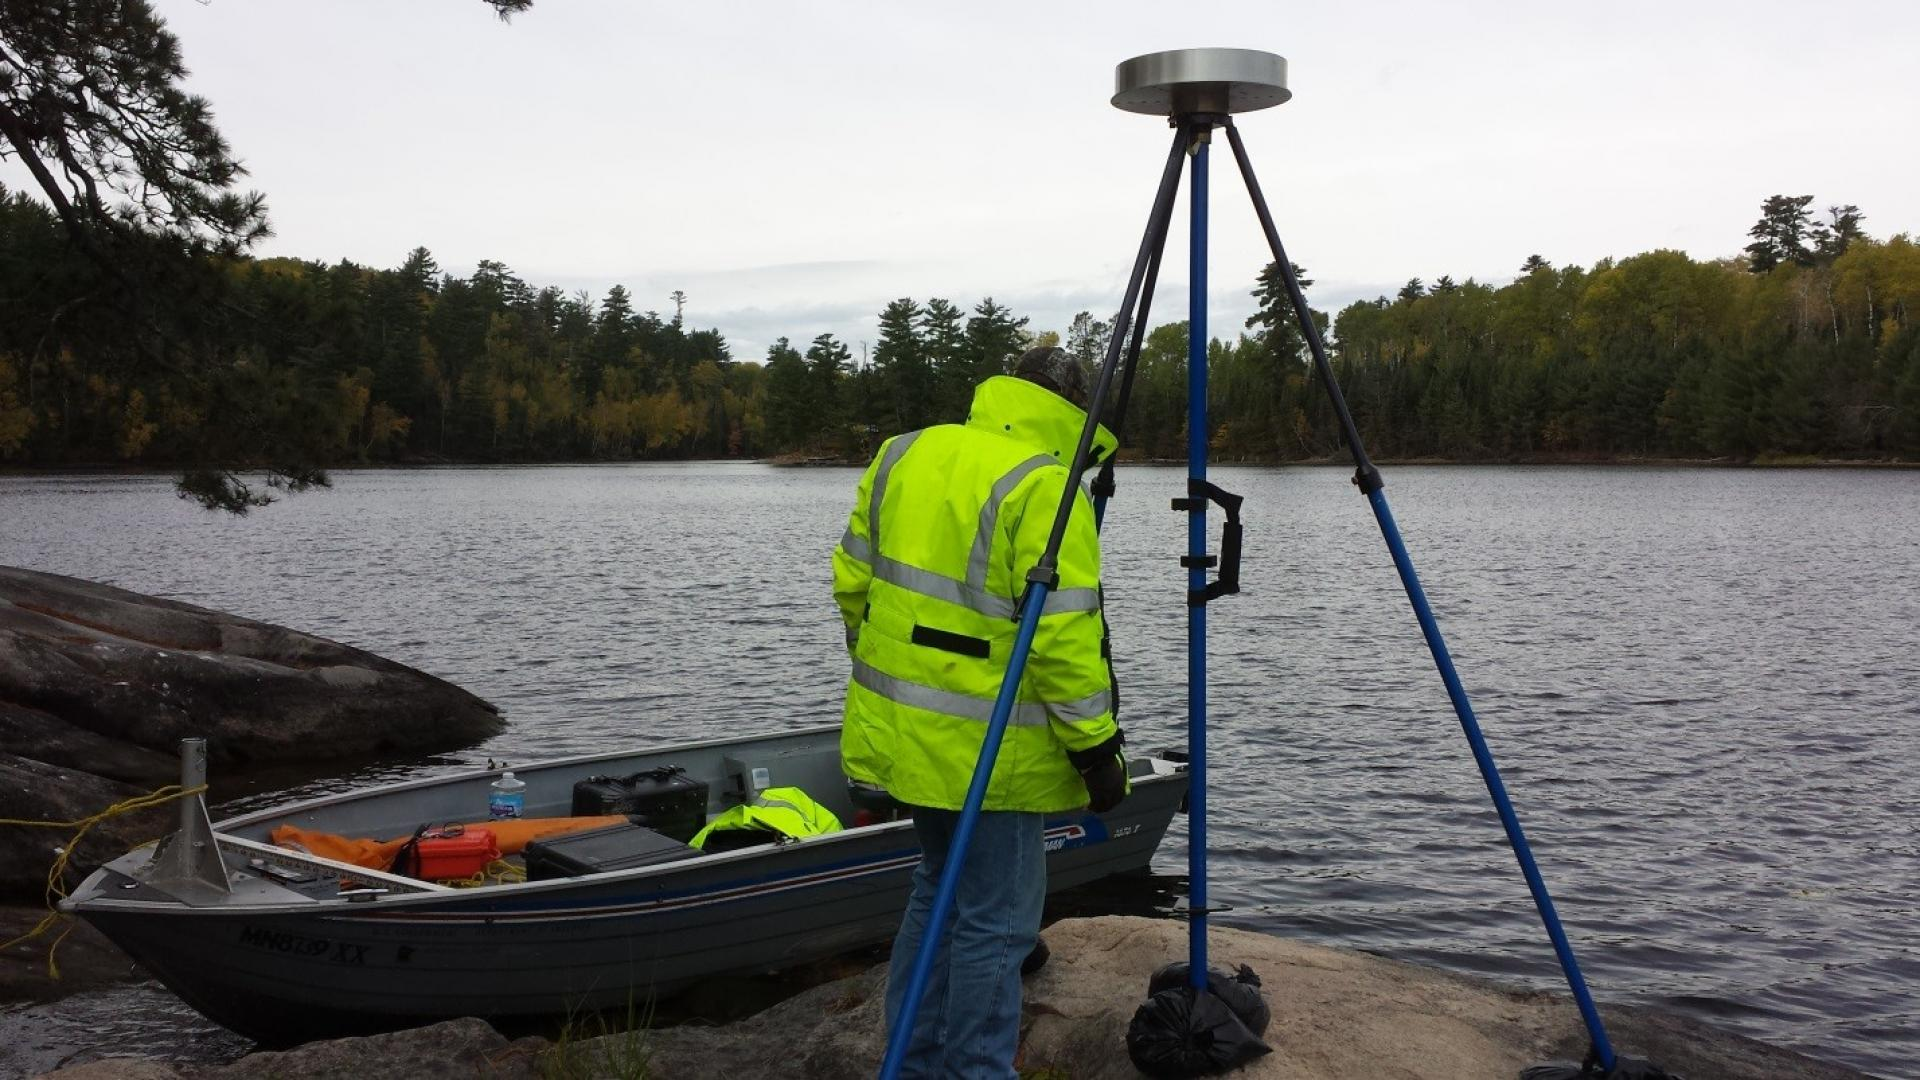 Water Matters - USGS Hydrologic Technician sets up surveying equipment off Rainy-Namakan Lakeshore